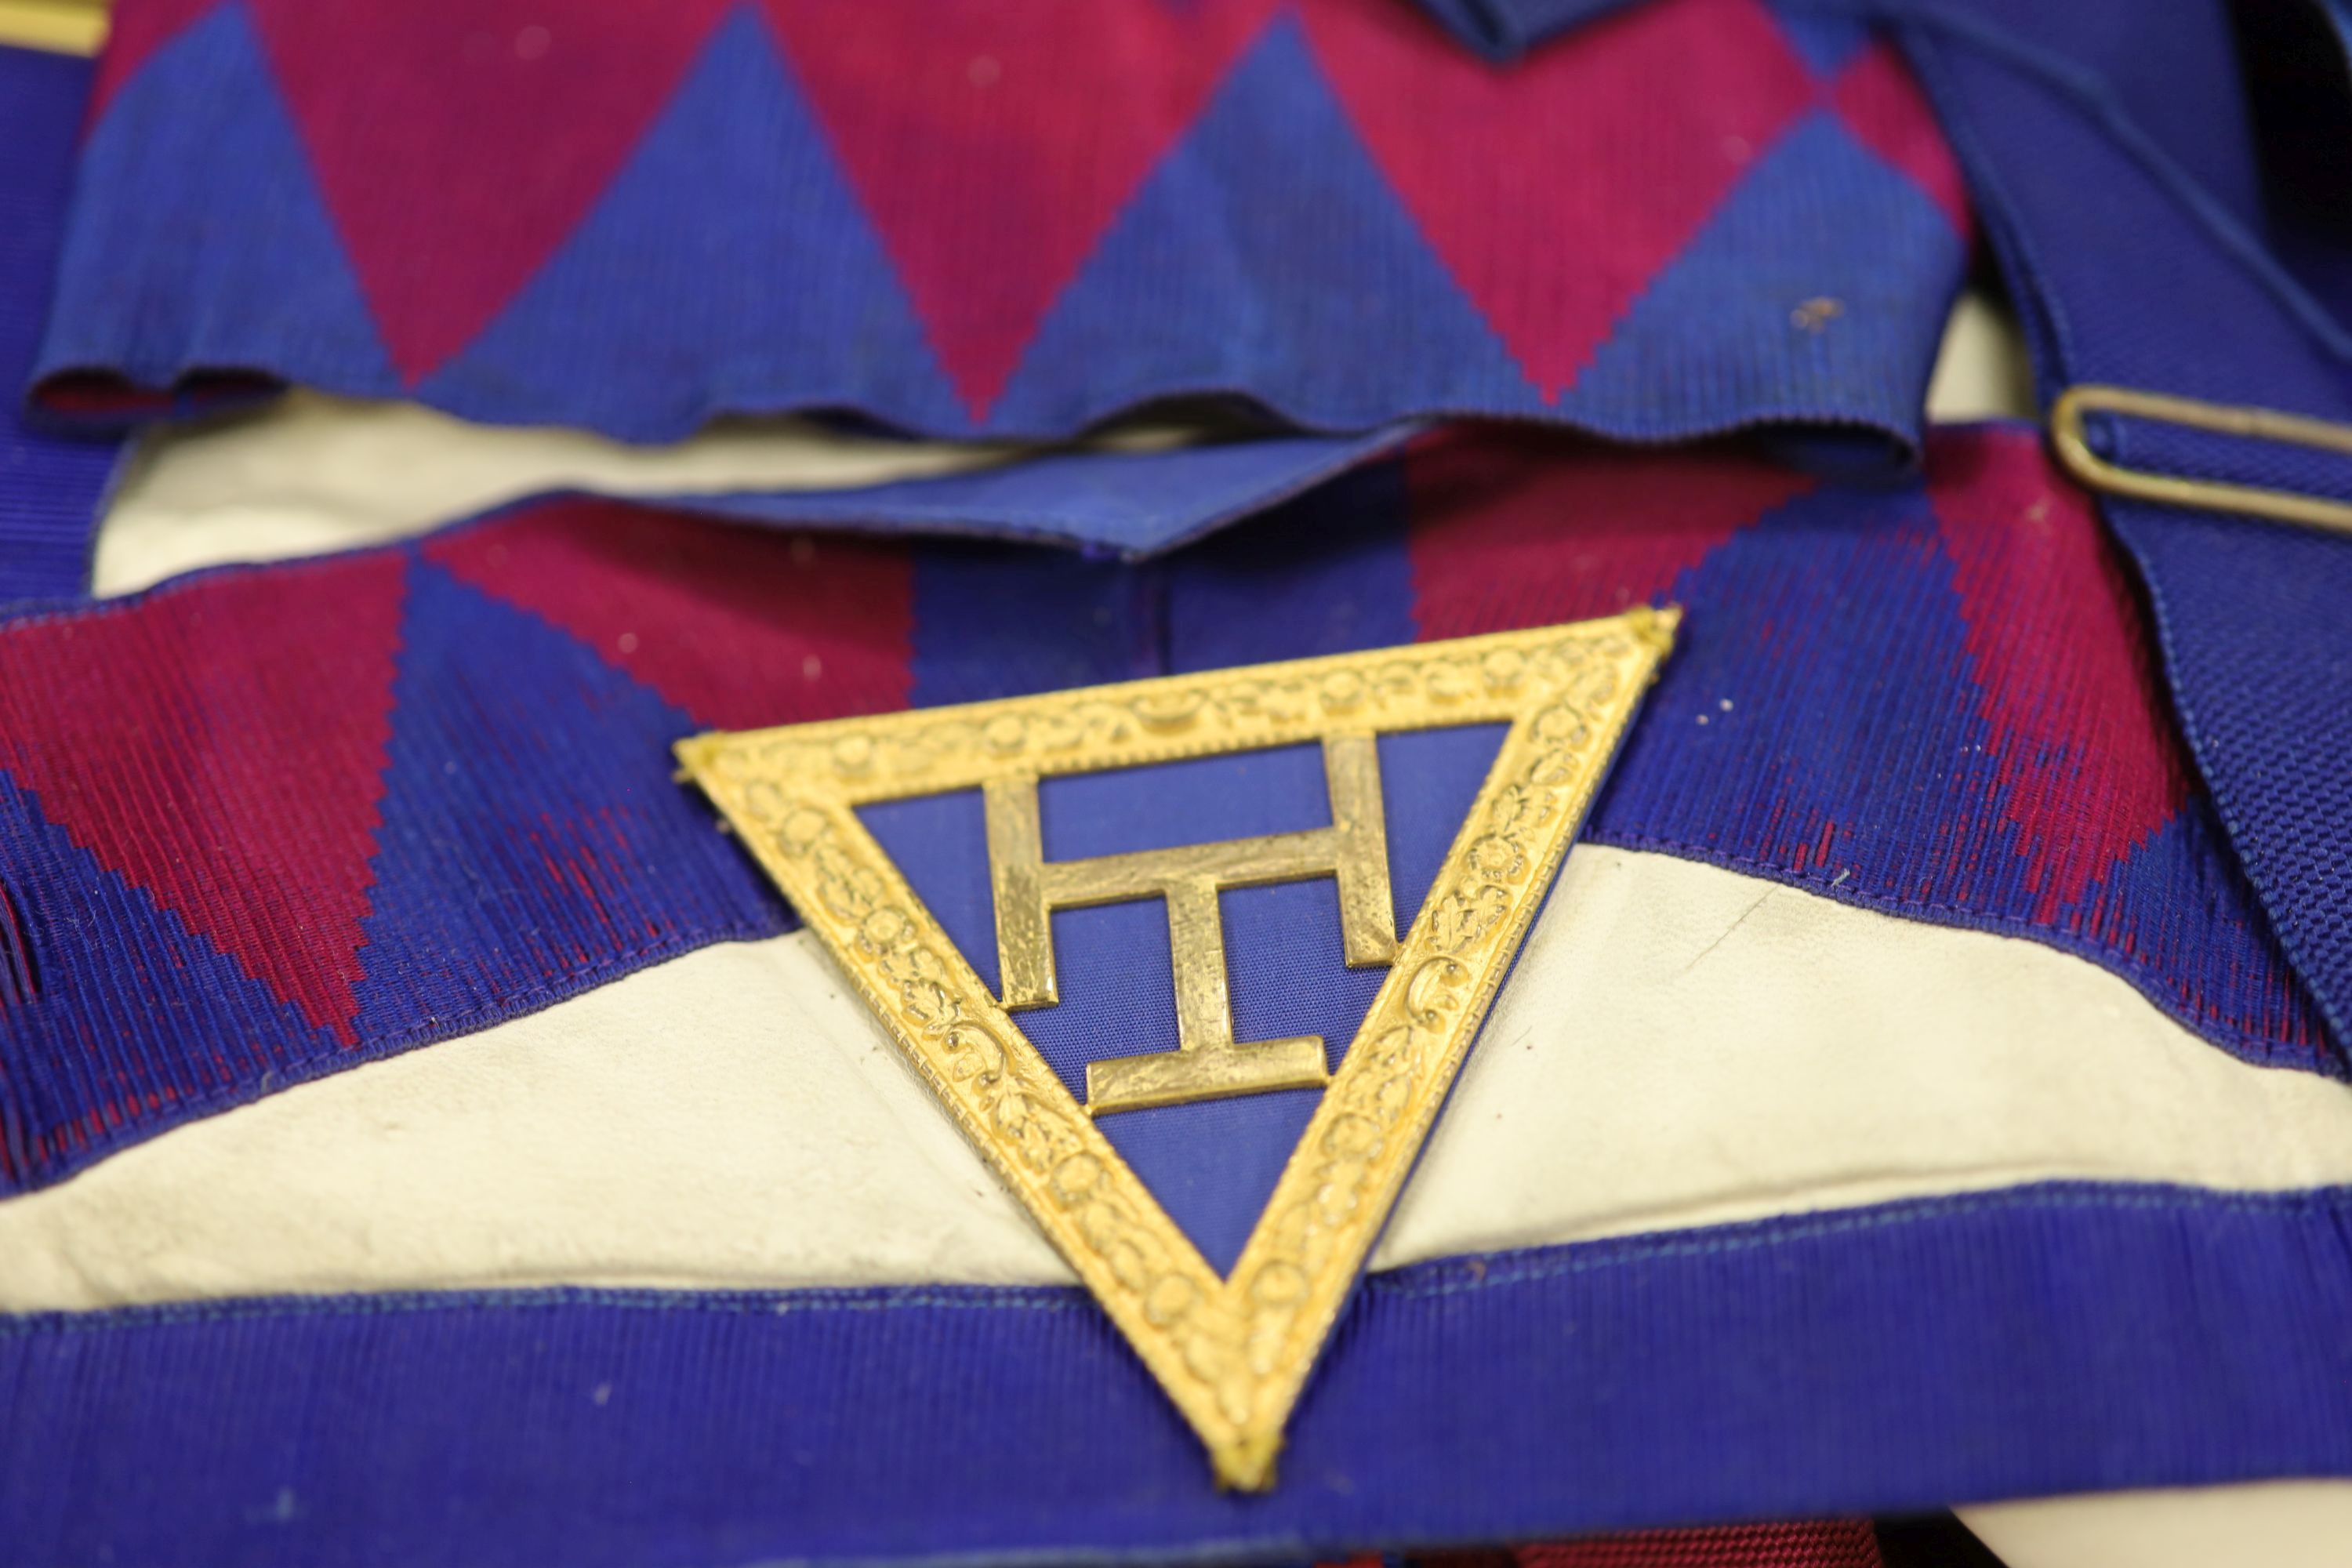 A large collection of Masonic aprons and sashes for London, etc. - Image 4 of 4